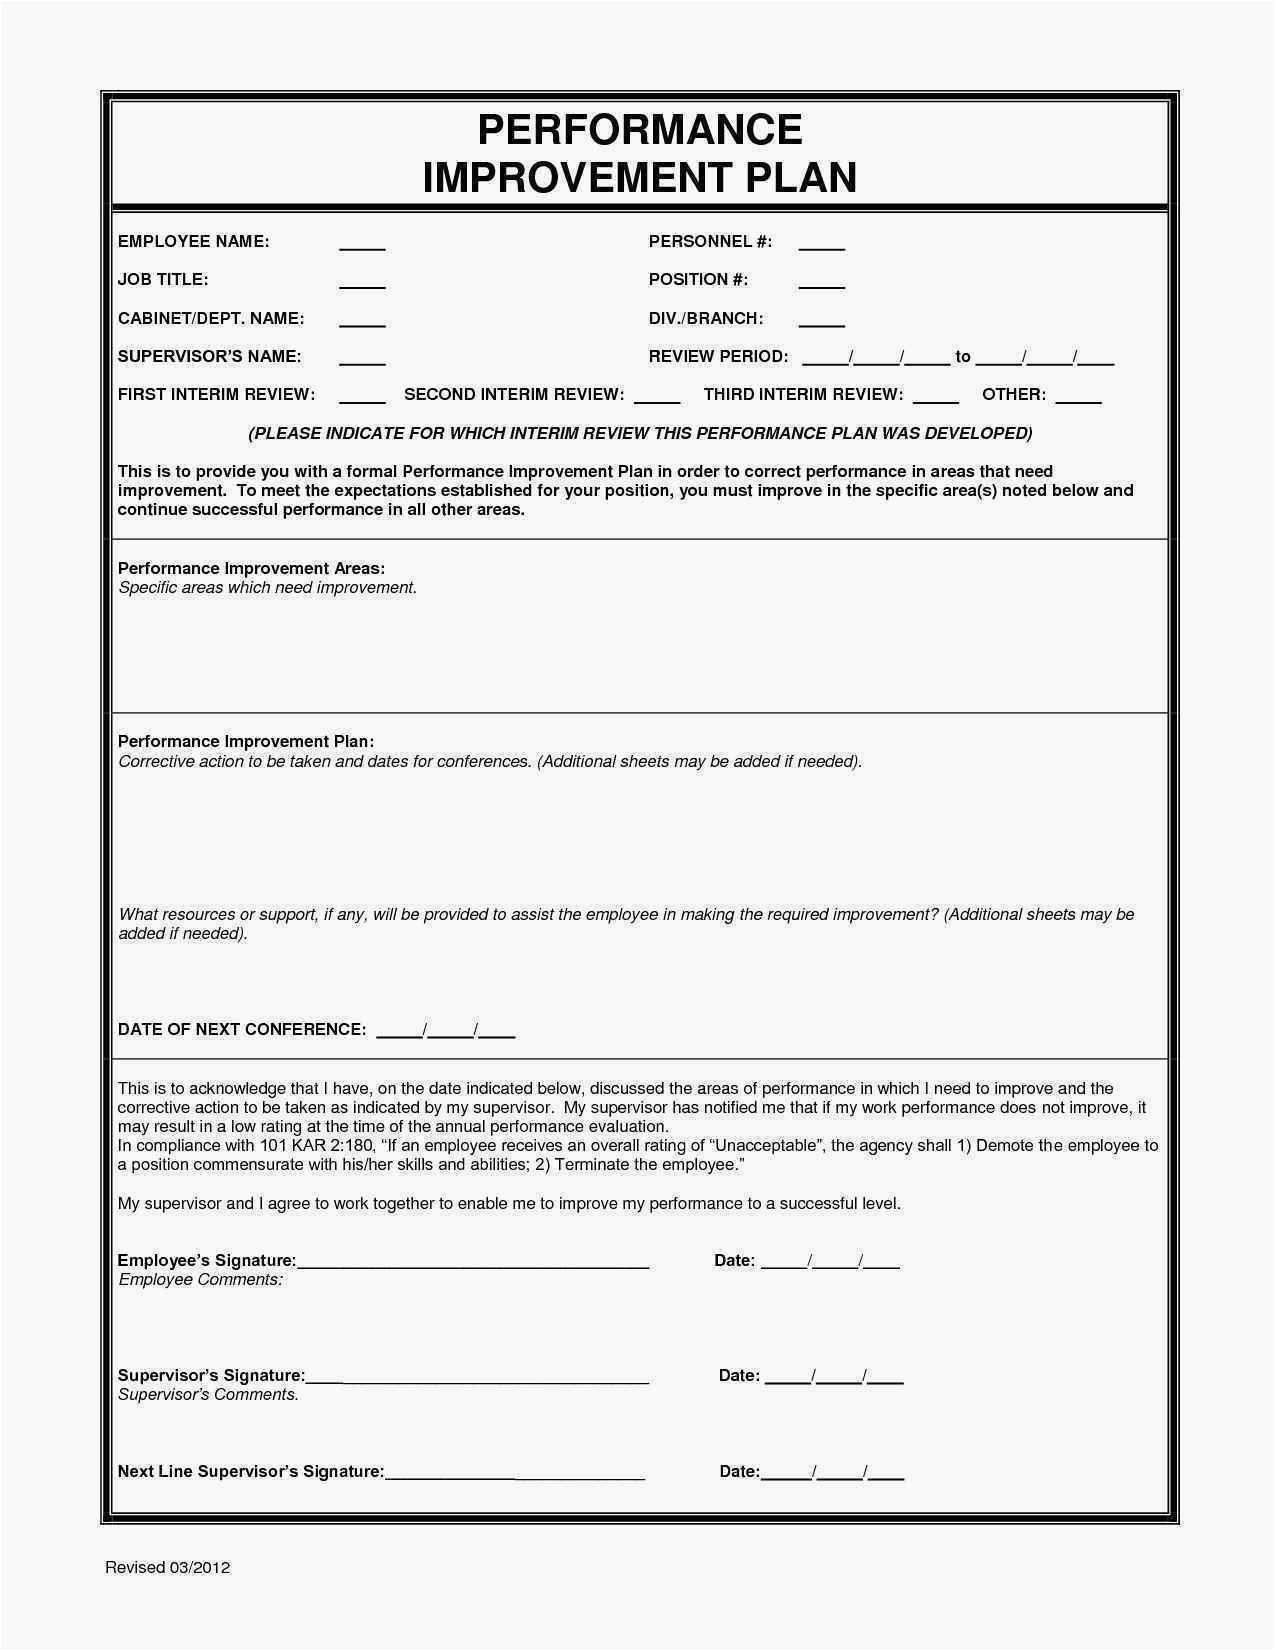 Employee Evaluation form Best Free Staff Evaluation form Template Best Real Estate Showing